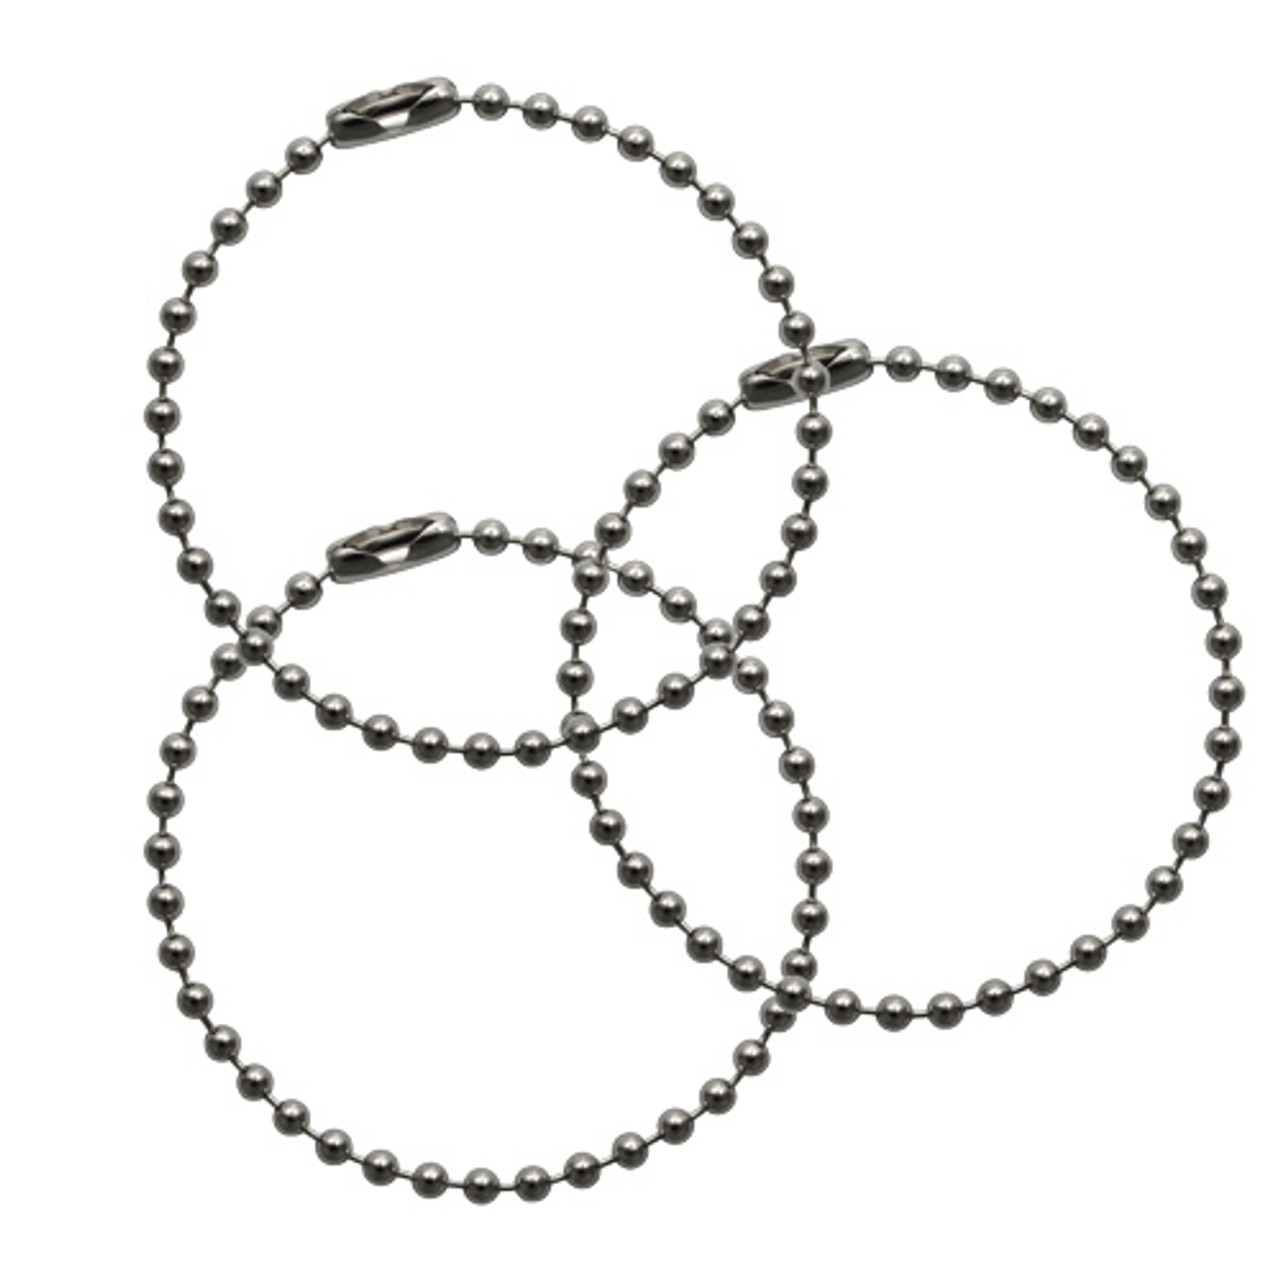 3 #3 stainless steel ball chain keychains 4.5 inch length. Sold in bulk at low factory direct prices.